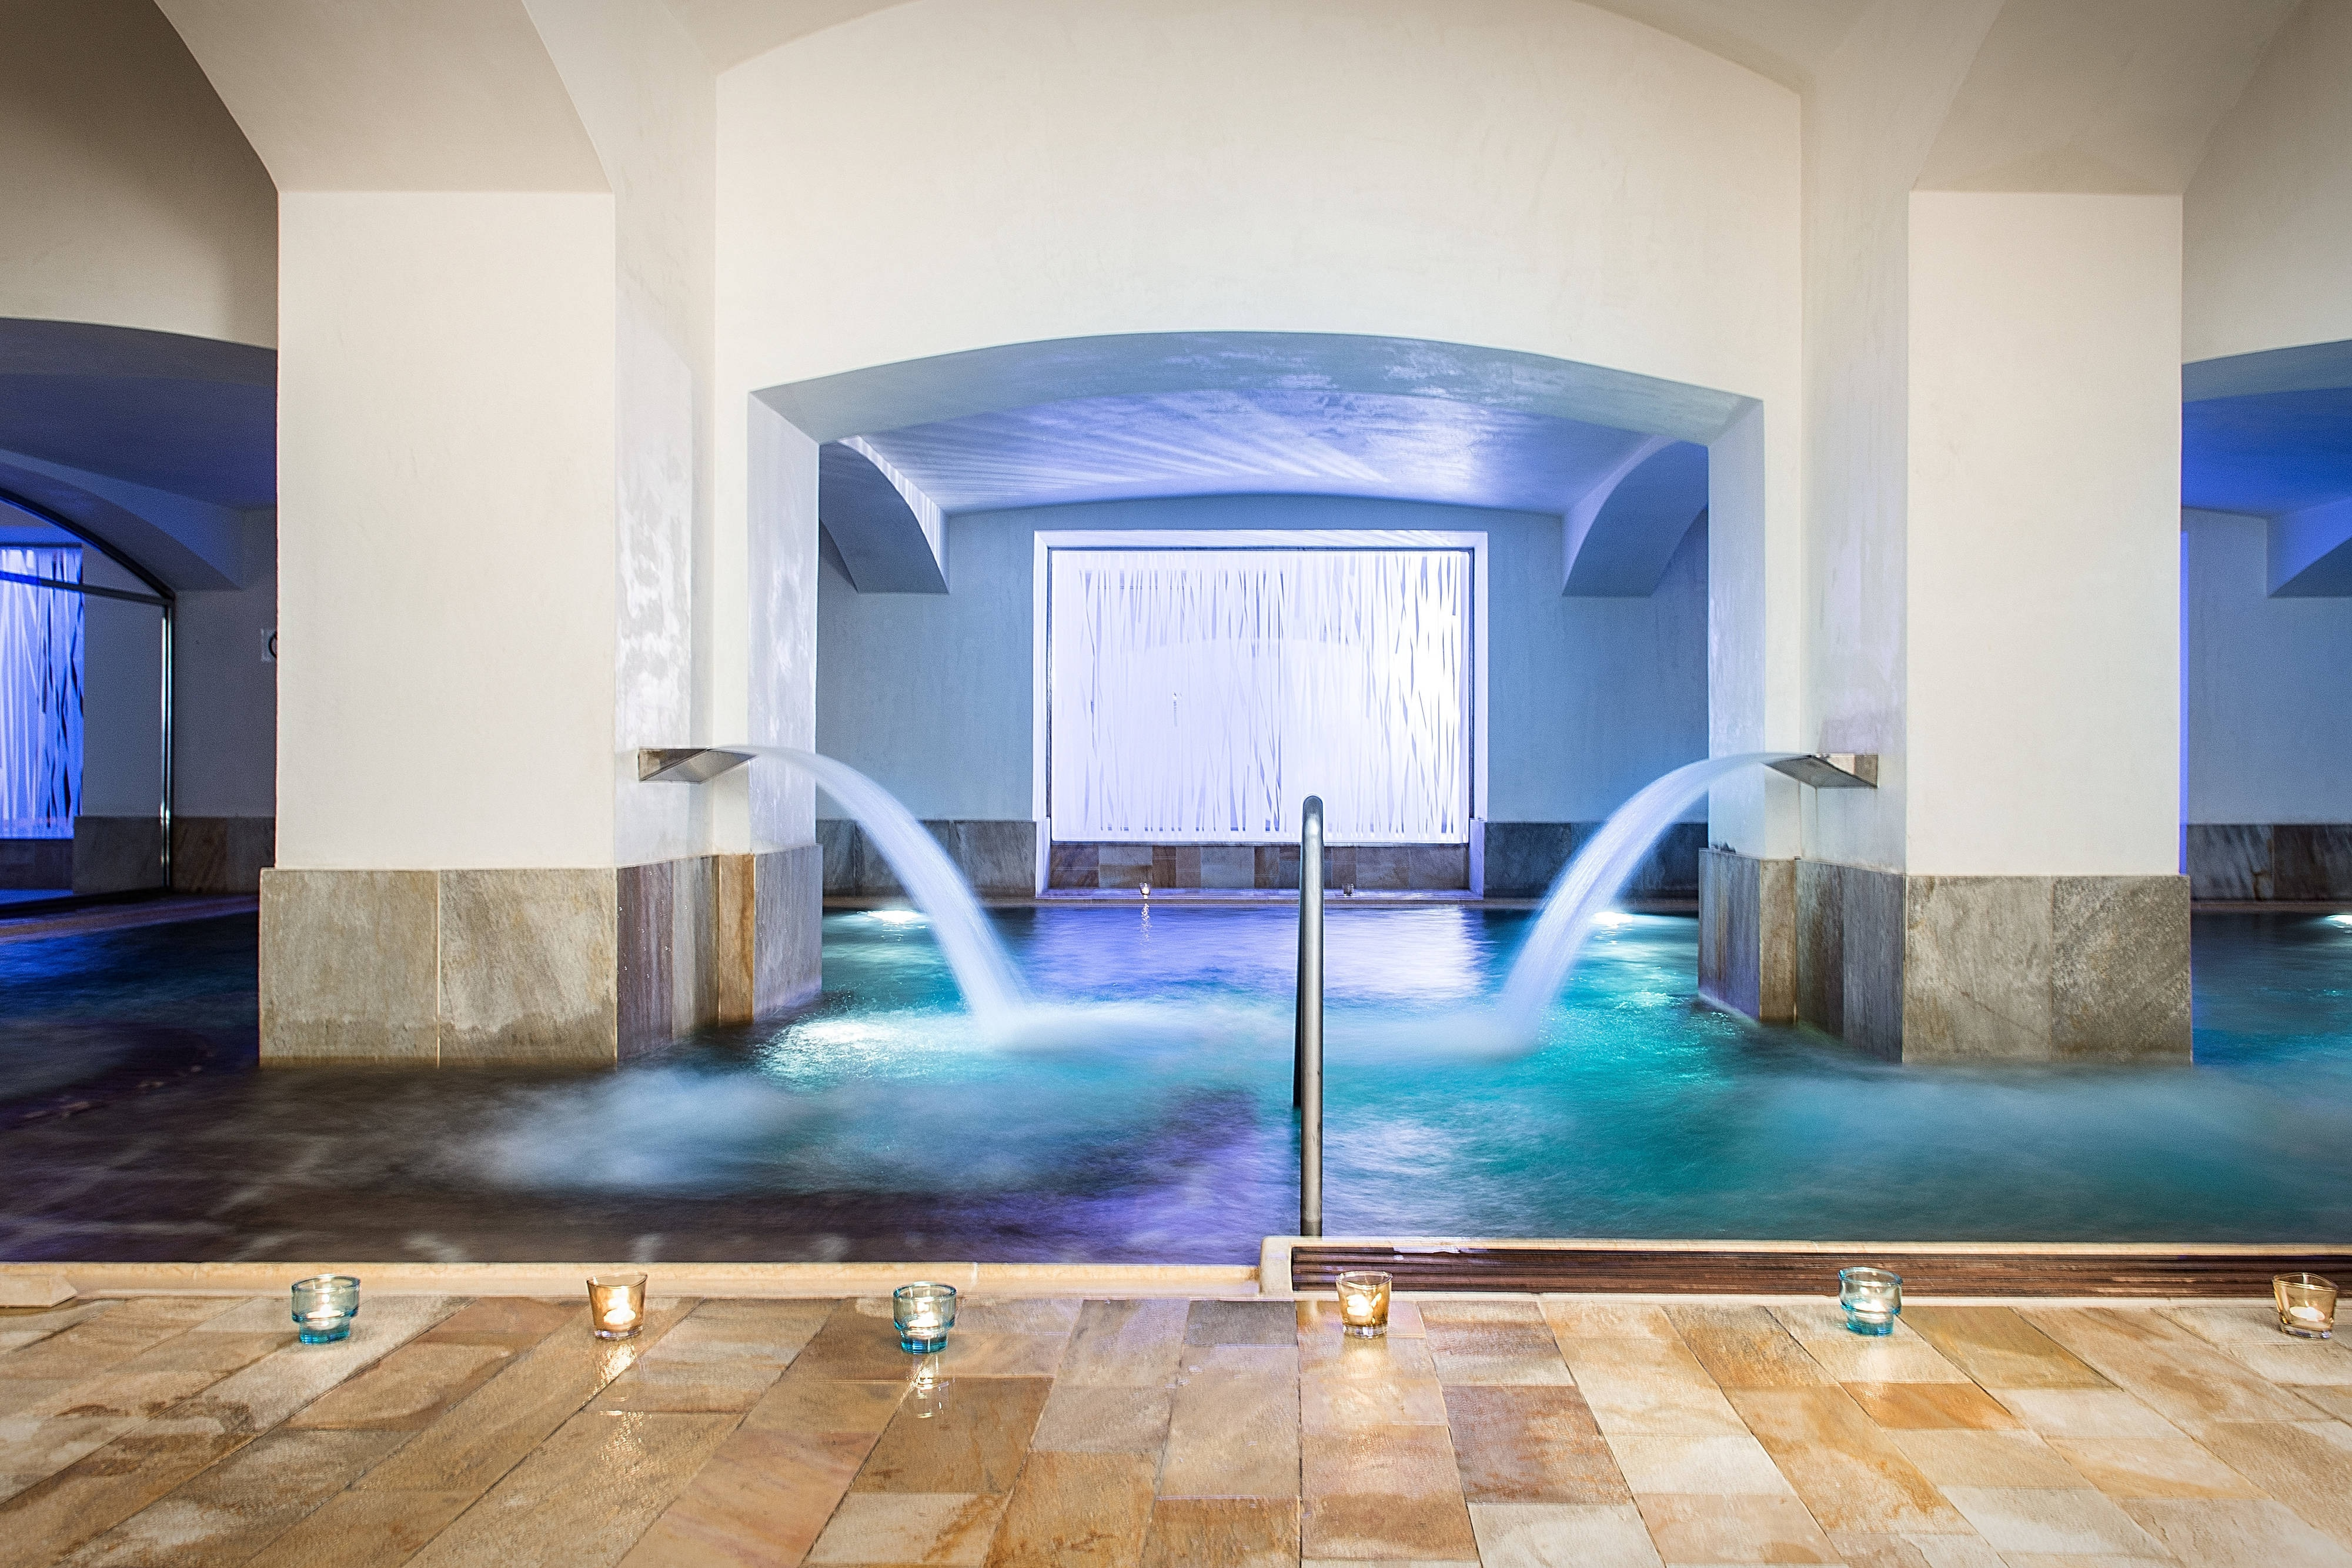 Prague hotel with indoor pool